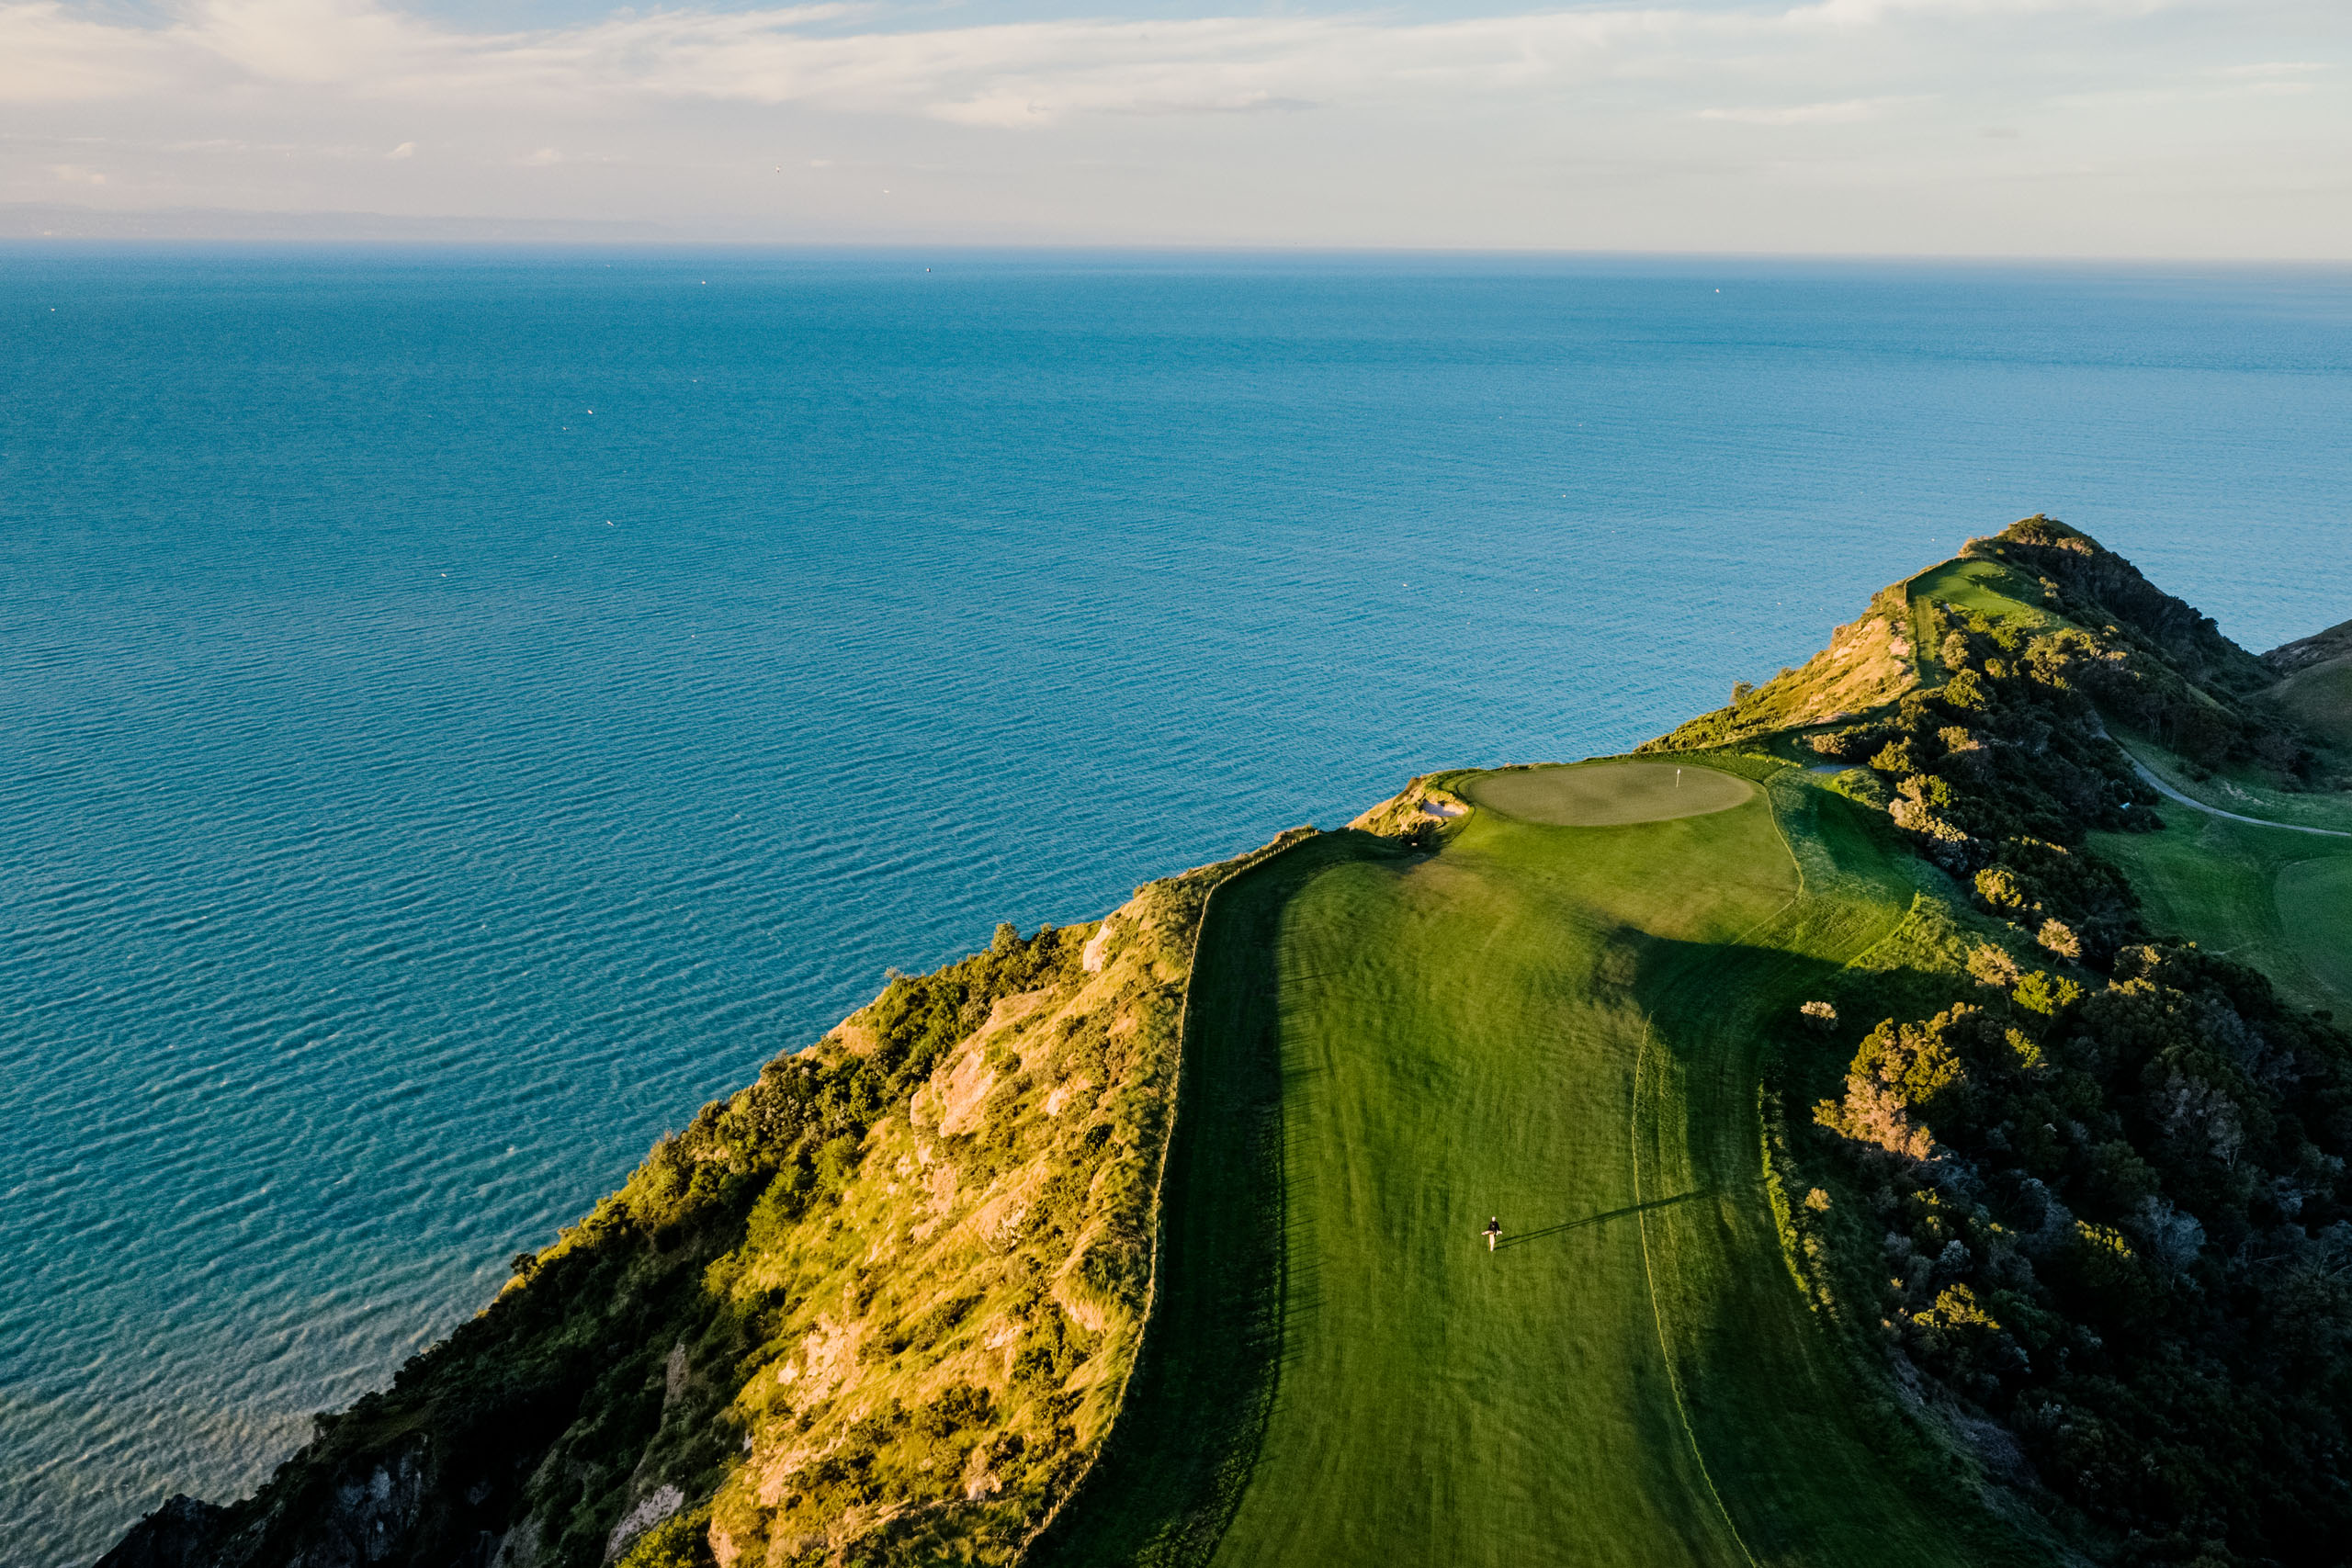 Cape Kidnappers Golf Course, No. 15